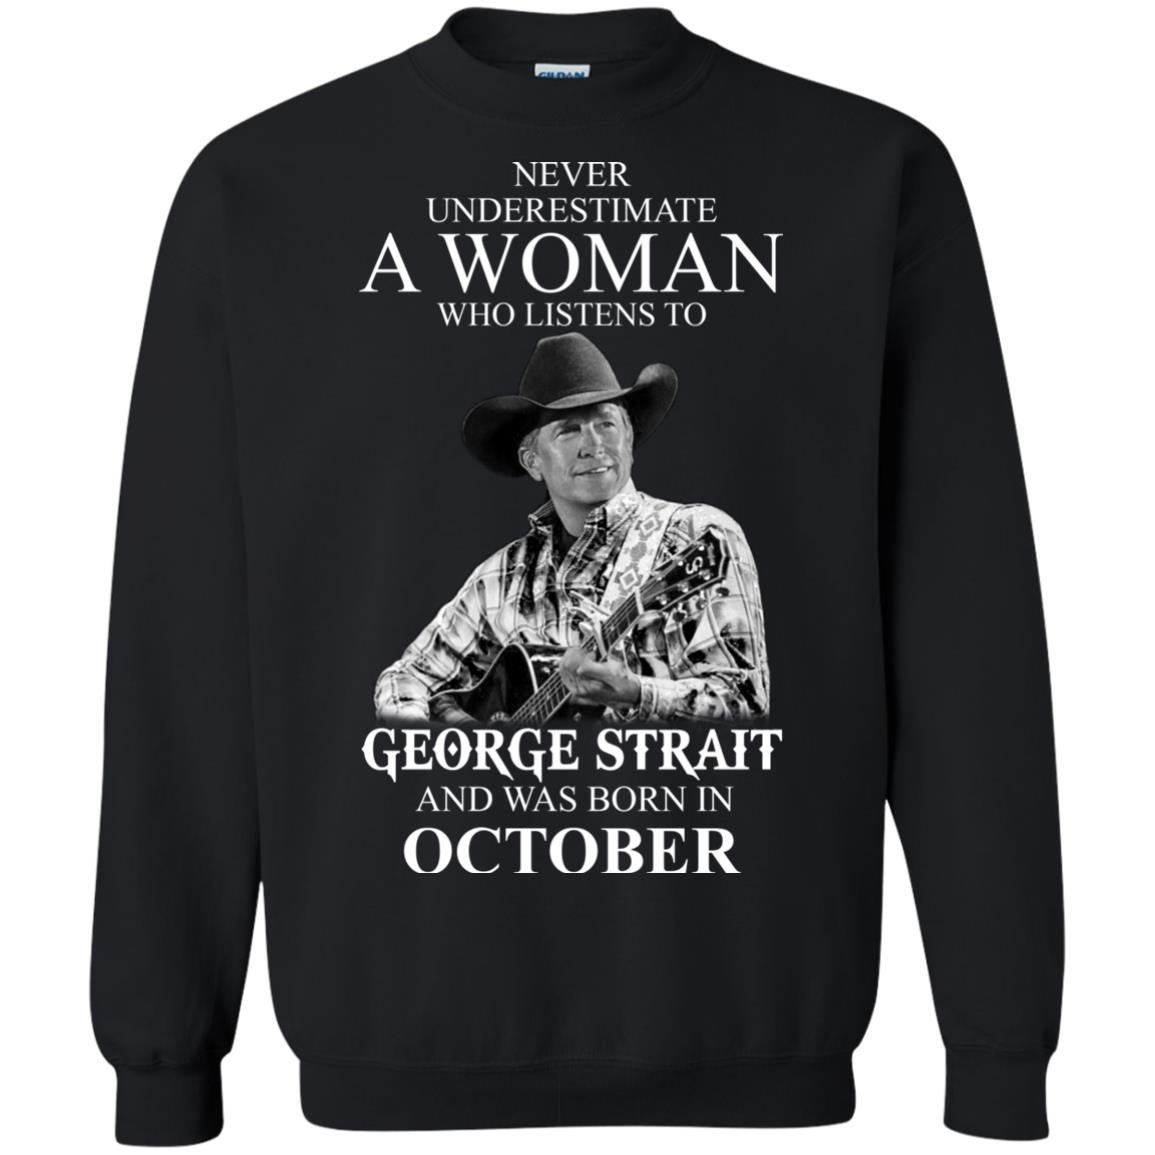 image 368 - Never Underestimate A Woman Who Listens To George Strait And Was Born In October shirt